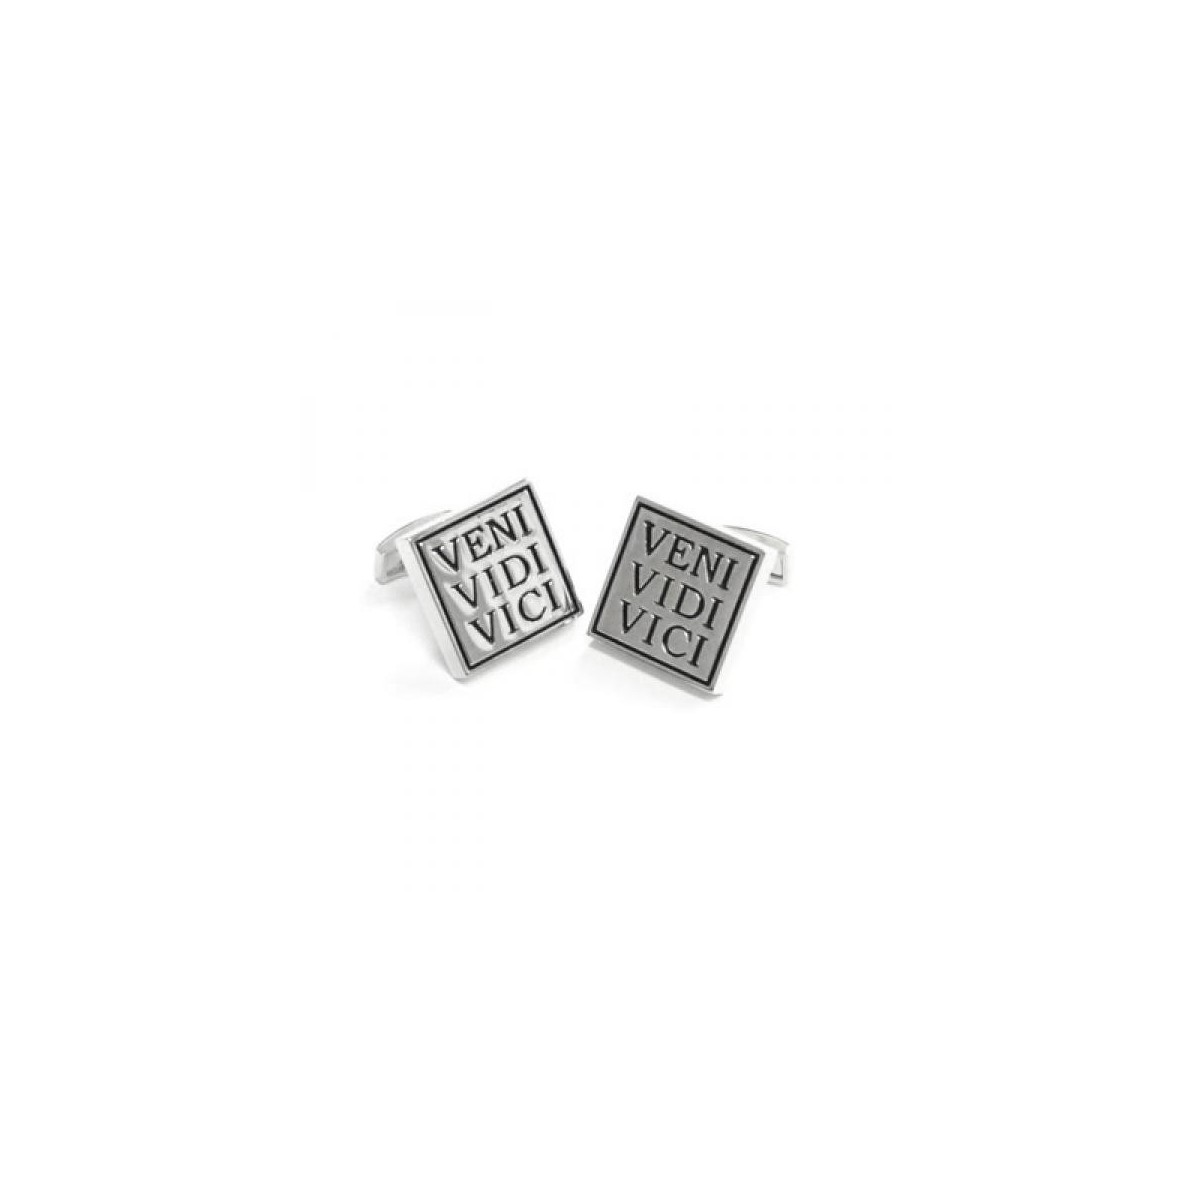 letters of recommendation samples veni vidi vici cufflinks i came i saw i conquered cufflinks 12102